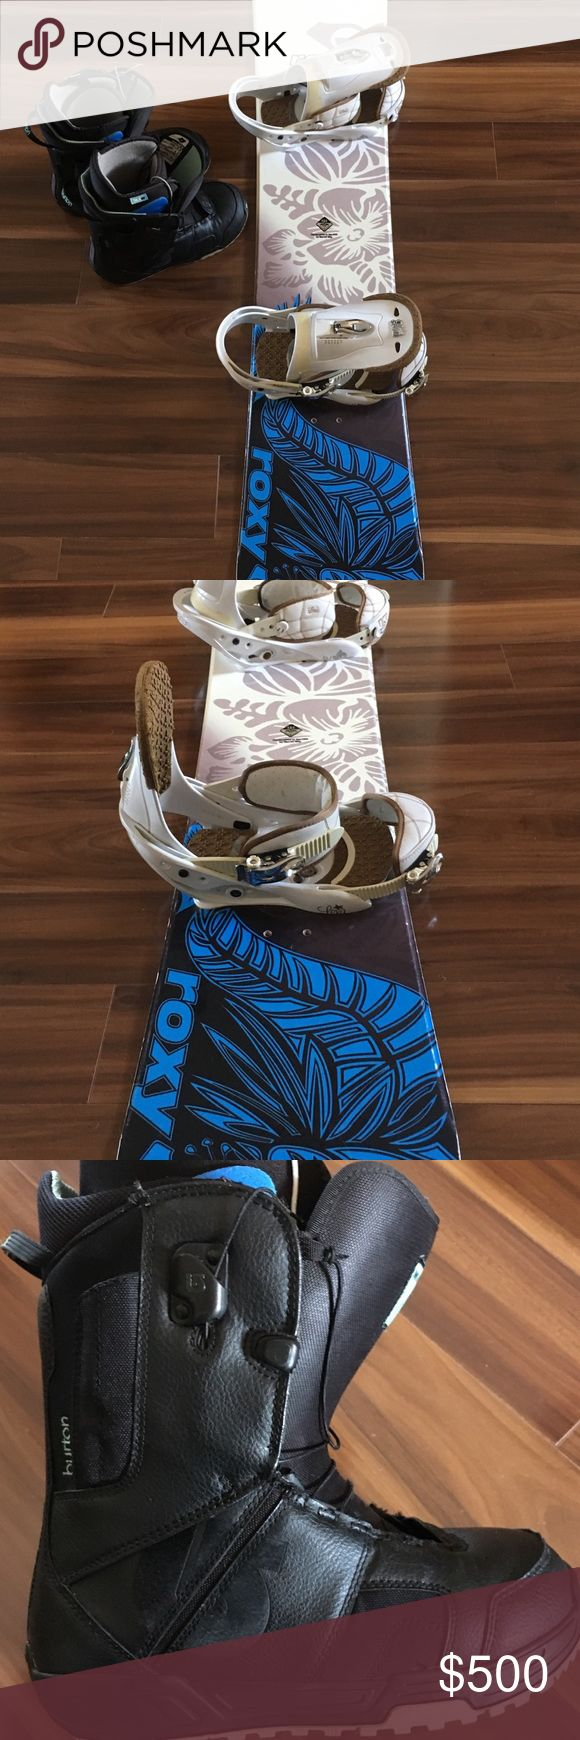 Roxy Snowboard - Burton Boots & Bindings Used. Slightly worn with scratches. Size 8.5 Burton boots and large Burton bindings. Snowboard is size 151. Roxy Other